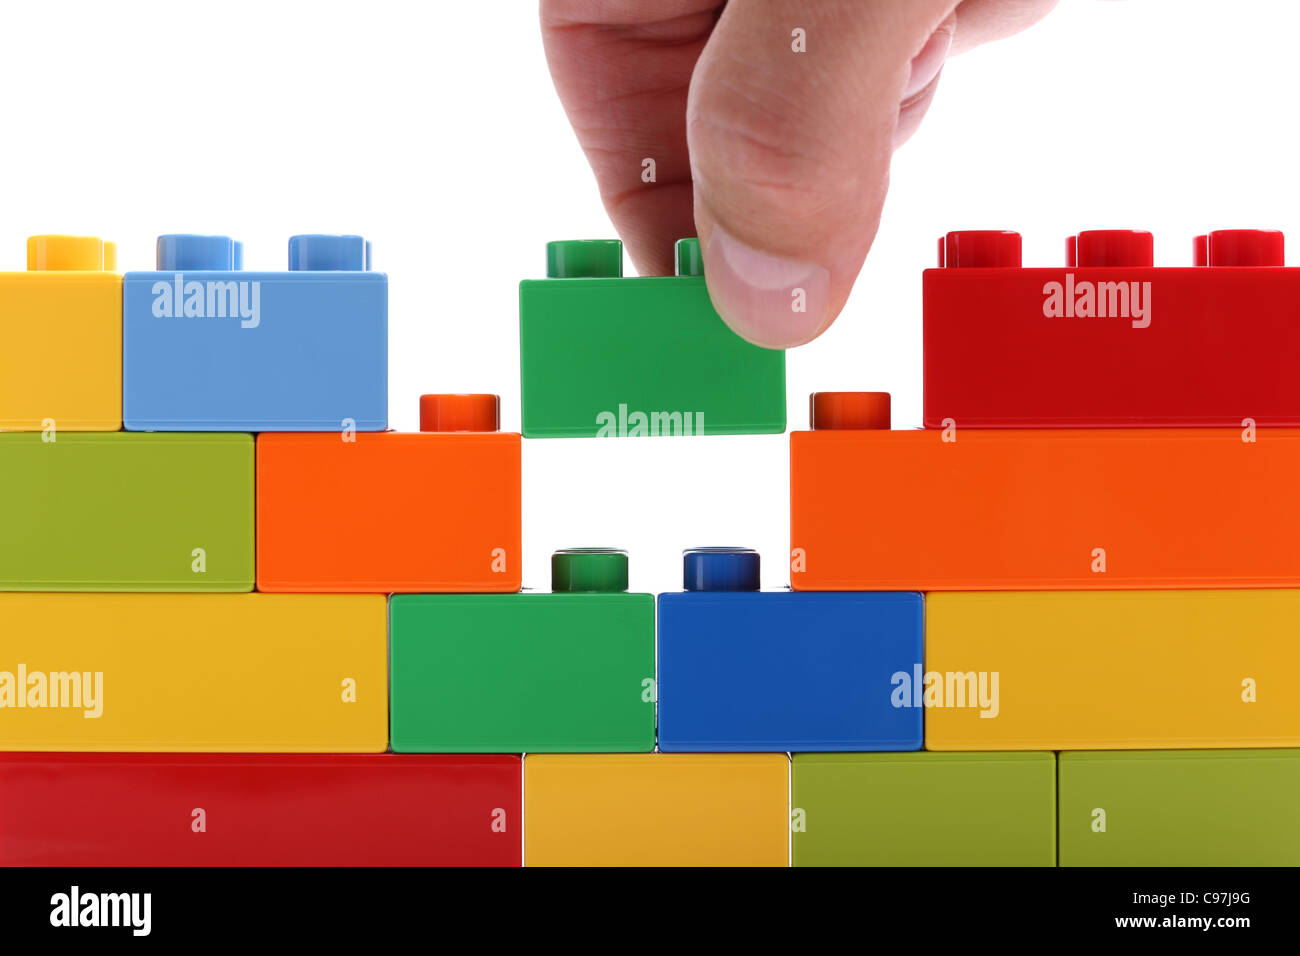 Building a wall from blocks - Stock Image